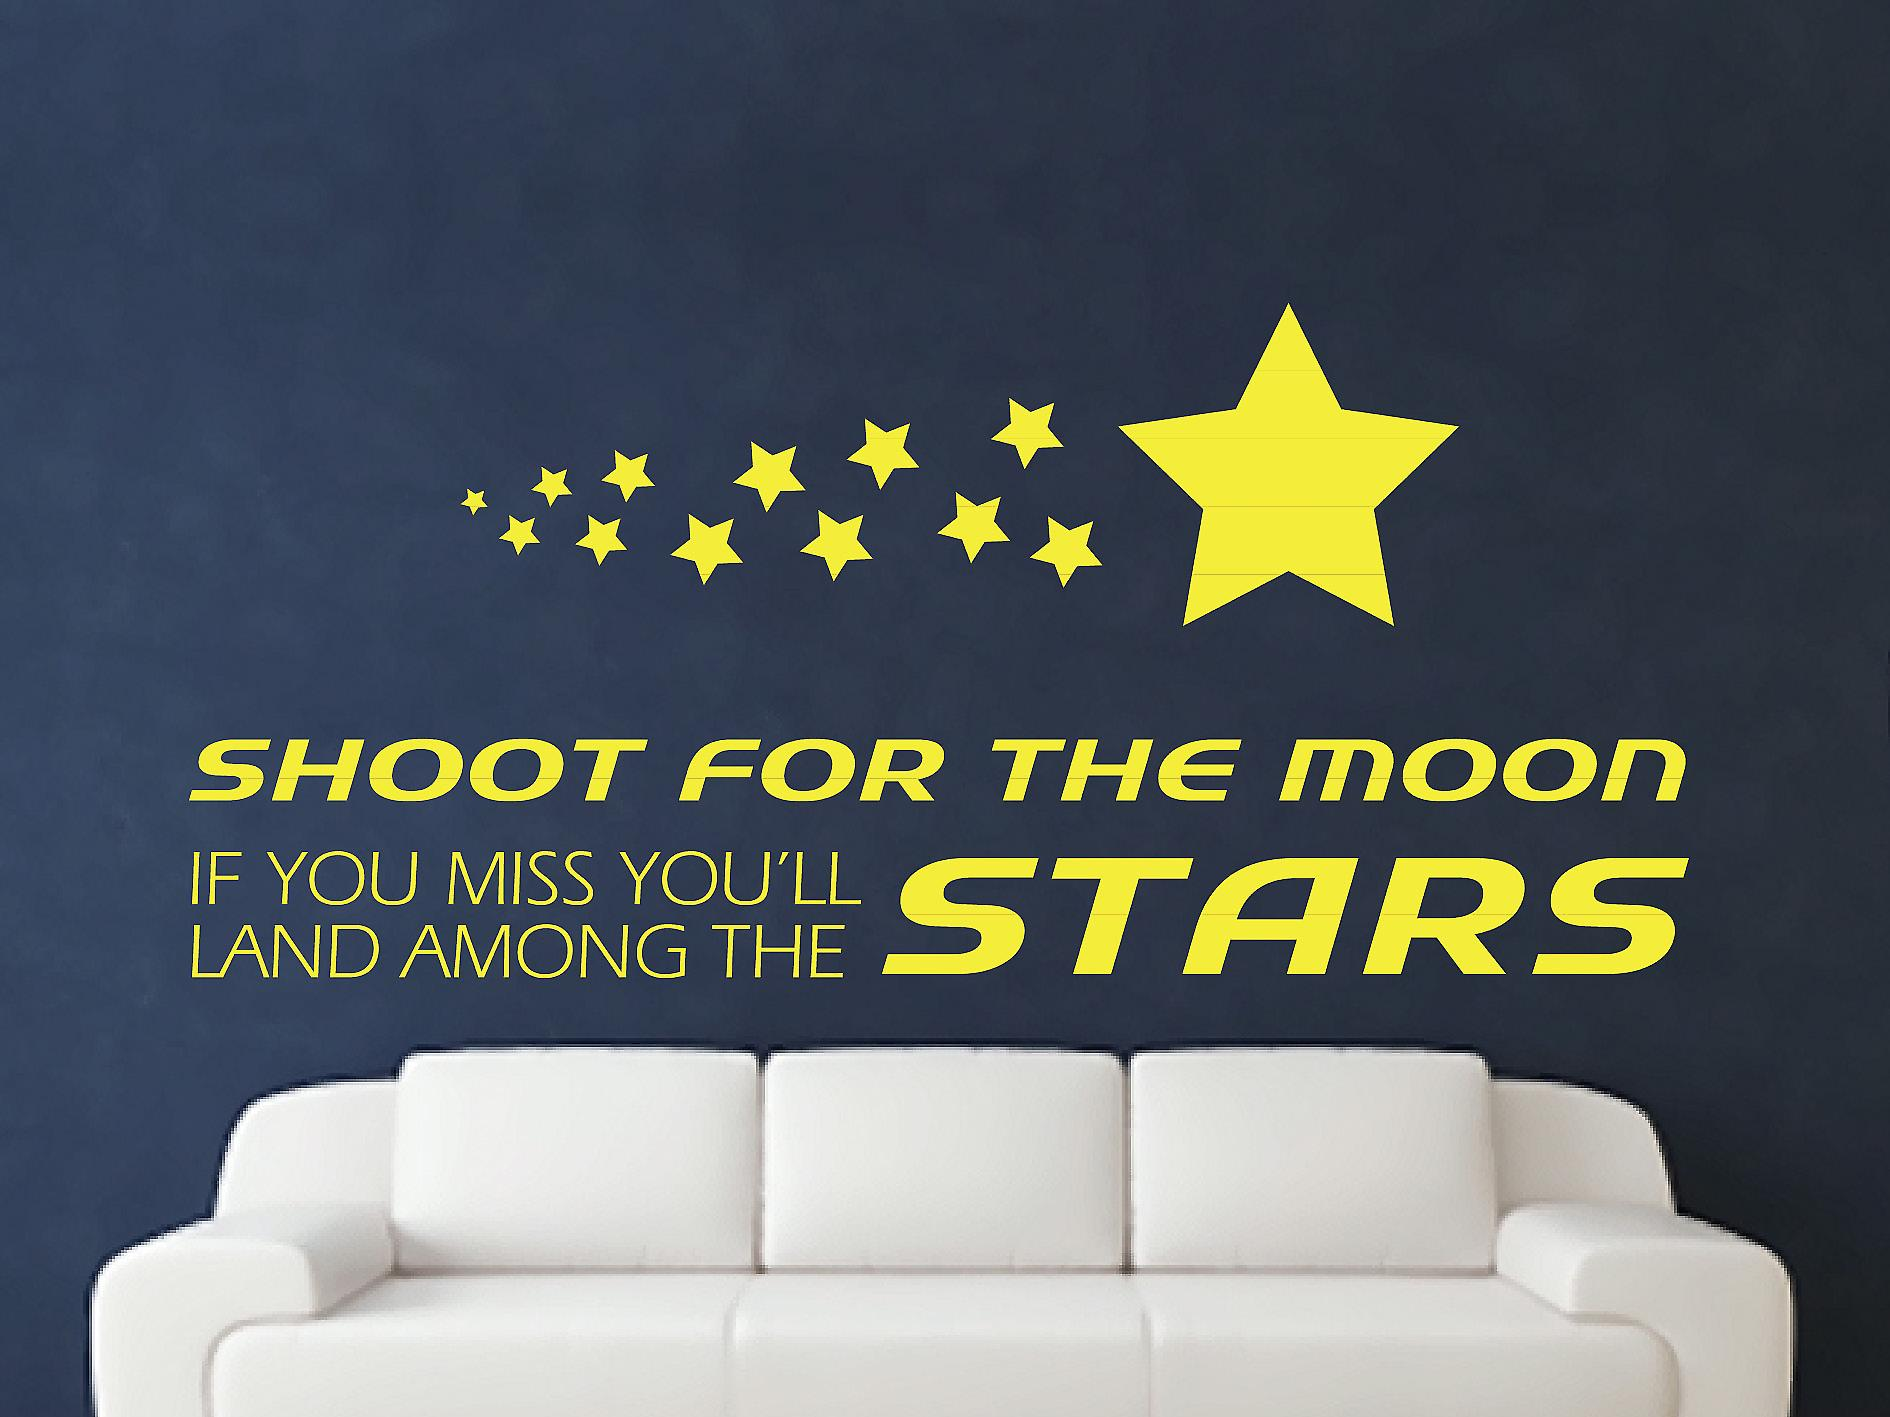 Shoot For The Moon Wall Art Sticker - Sulphur